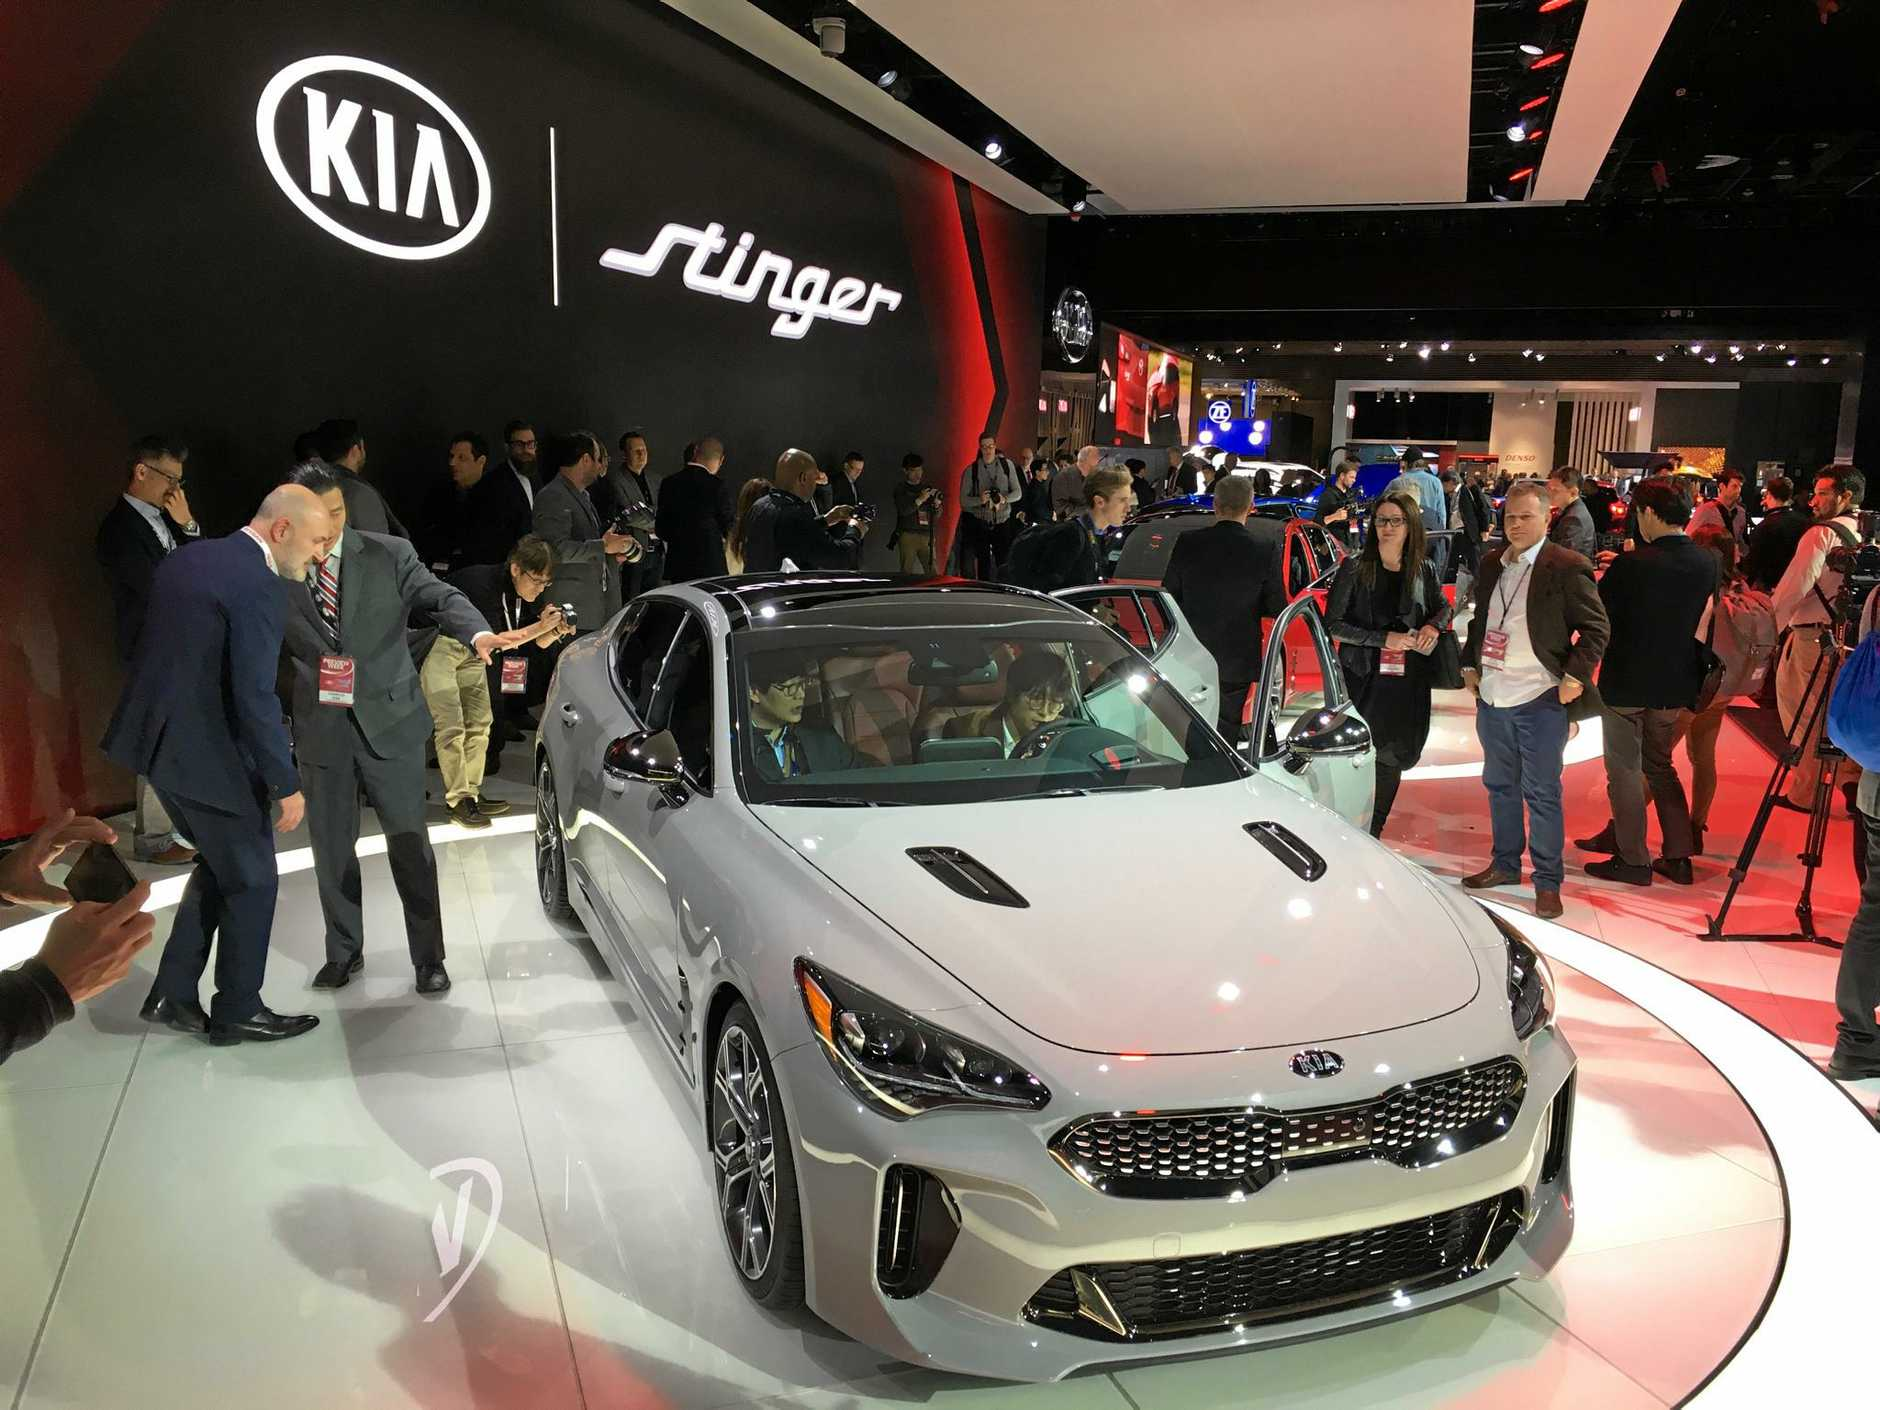 Crowds gather around the Kia Stinger GT at the Detroit motor show.